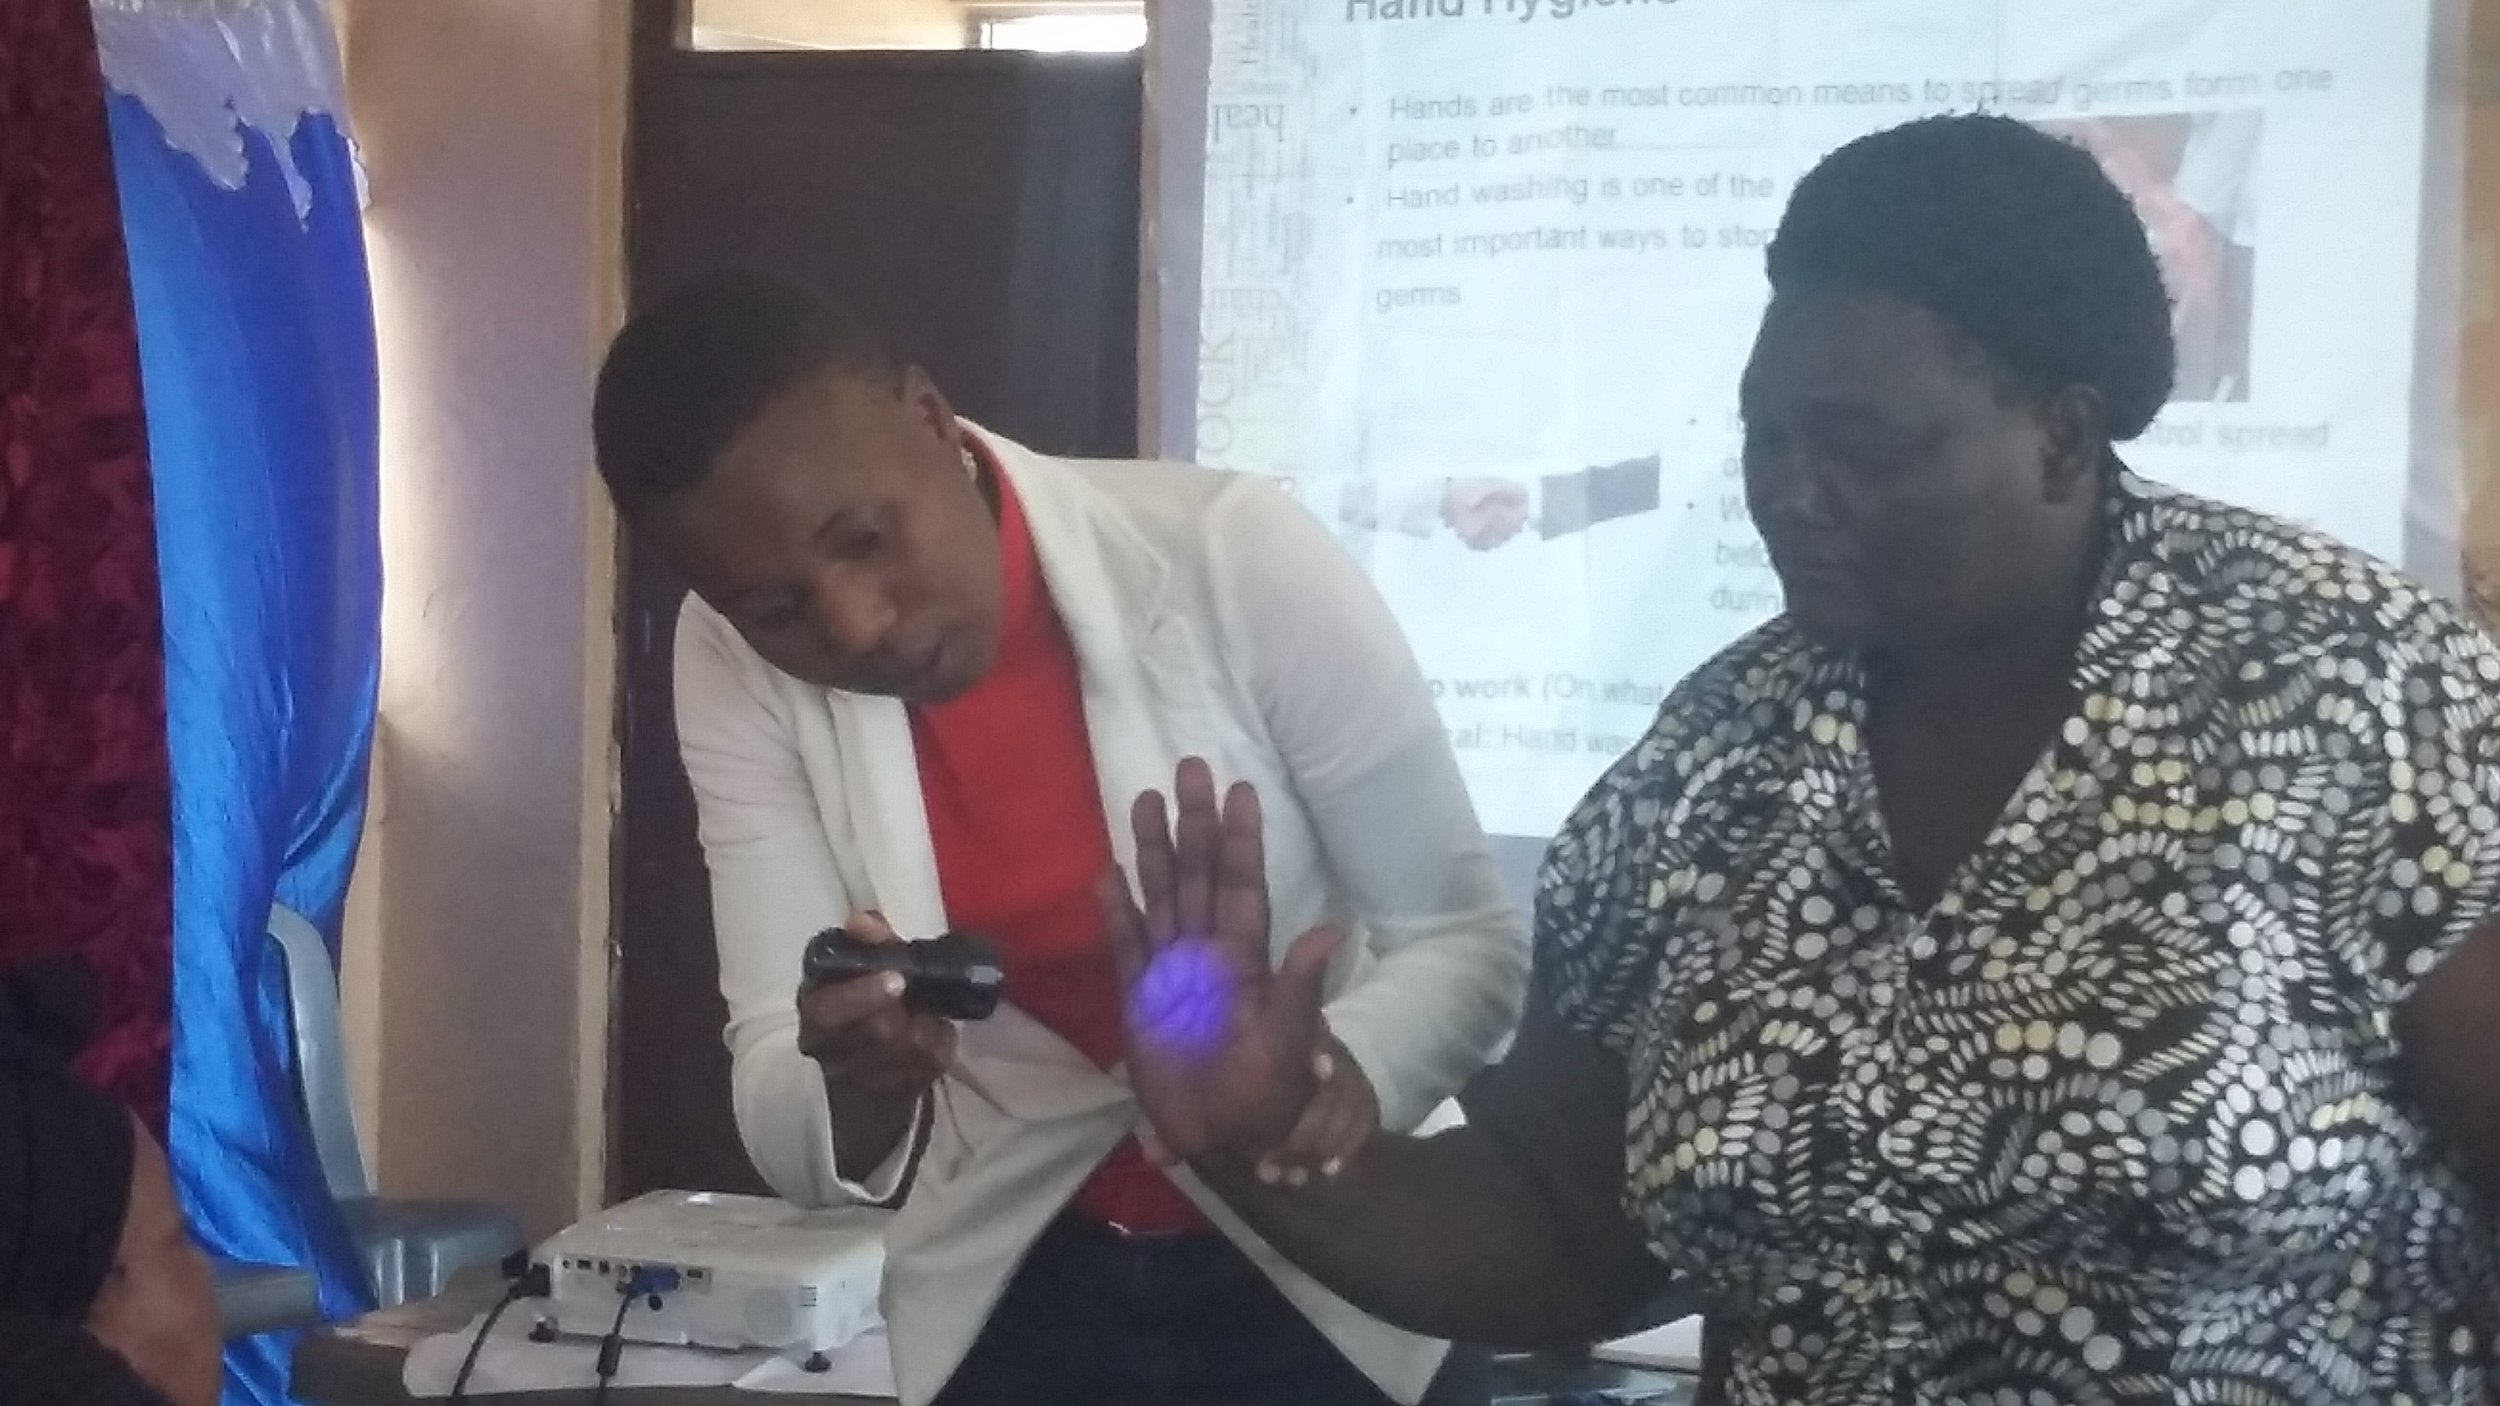 Lorraine of ILRI takes participants through hand washing procedure